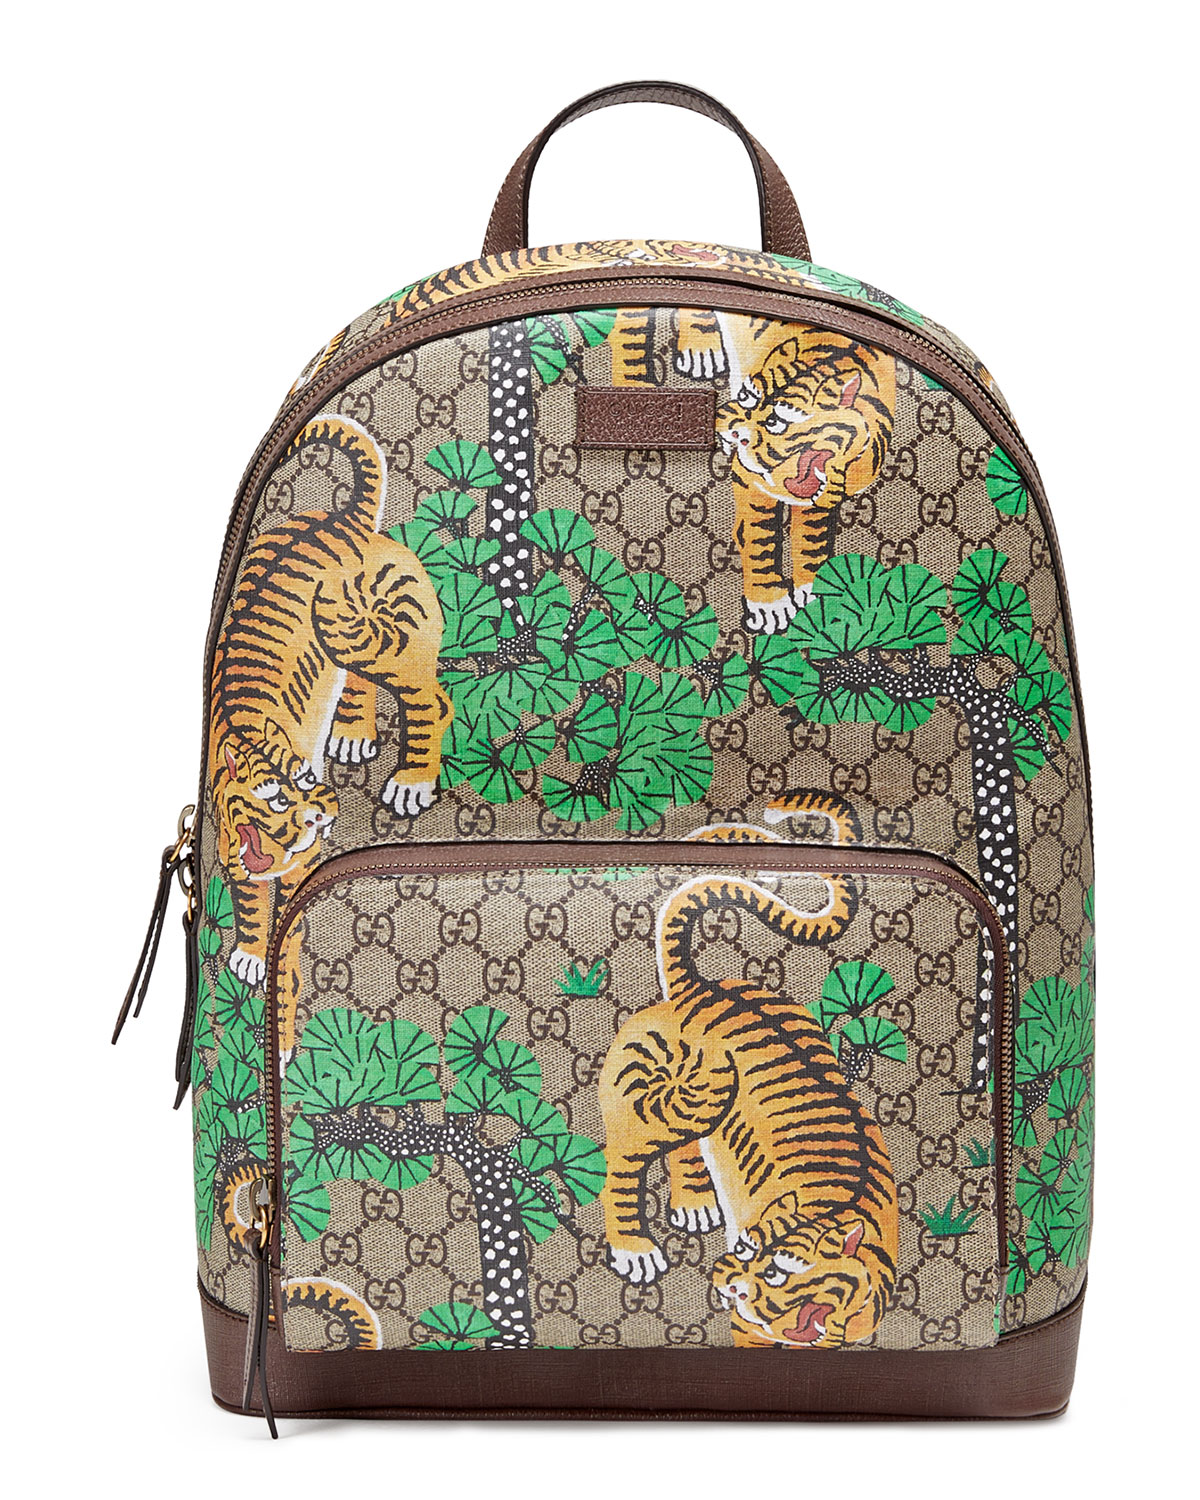 da2a11c89ba Gucci TIGER CUB BACKPACK   Neiman Marcus